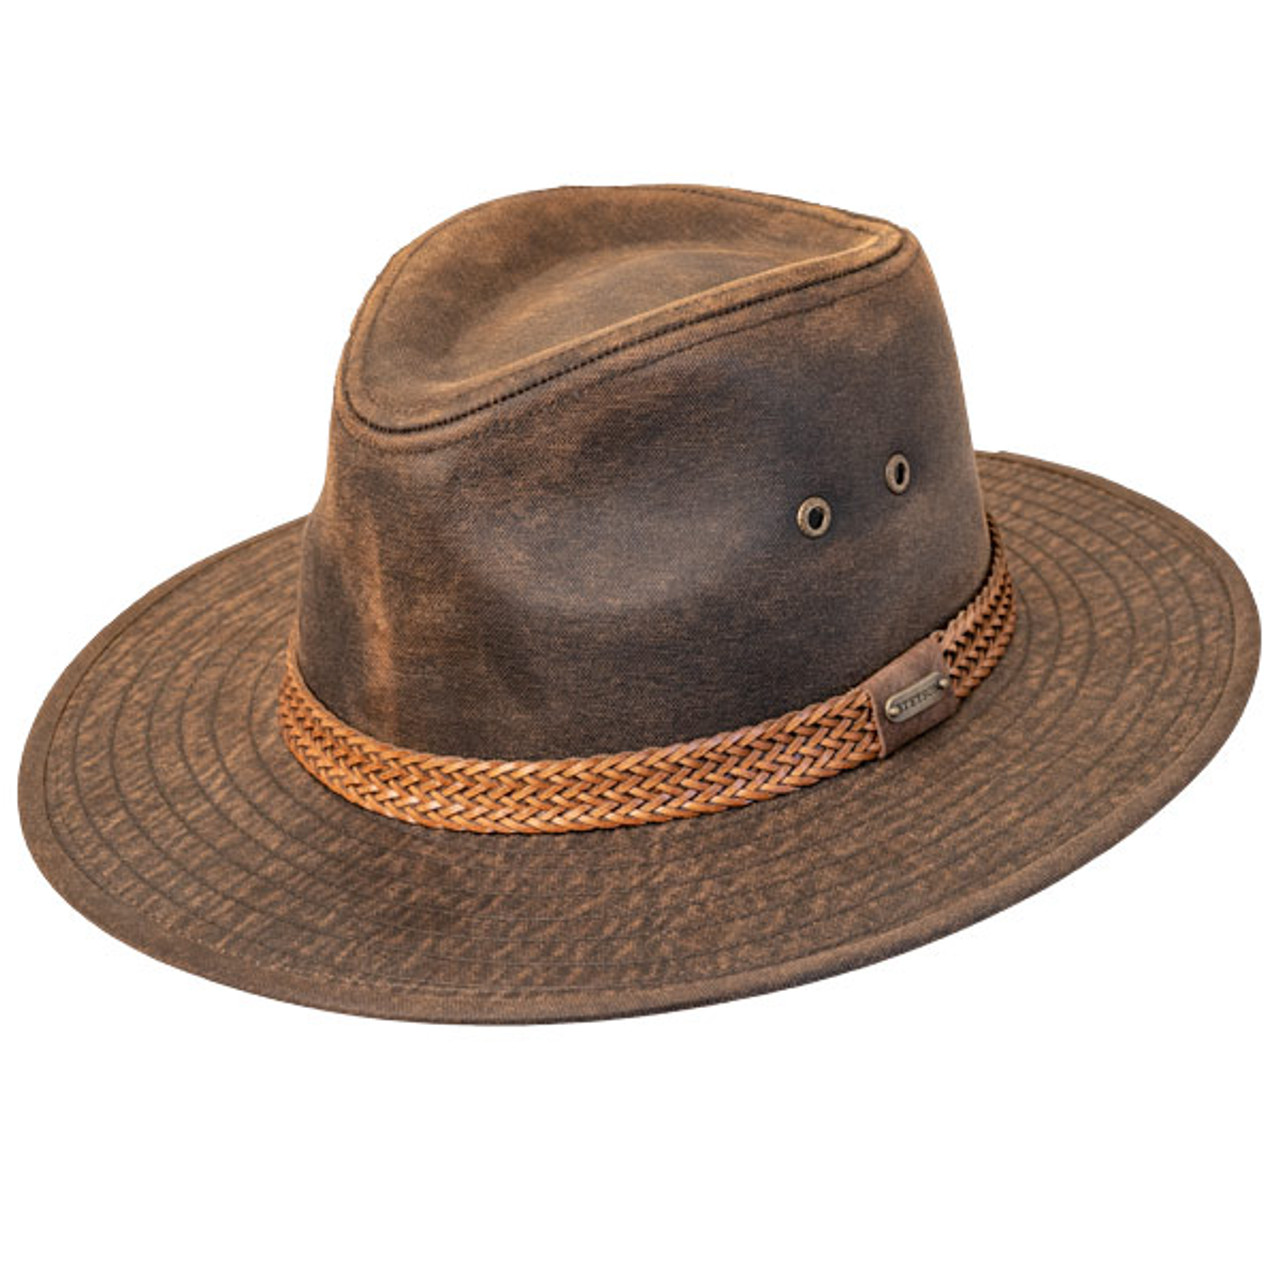 6fd9c598 Stetson | Distressed Washed Boonie Hat | Hats Unlimited